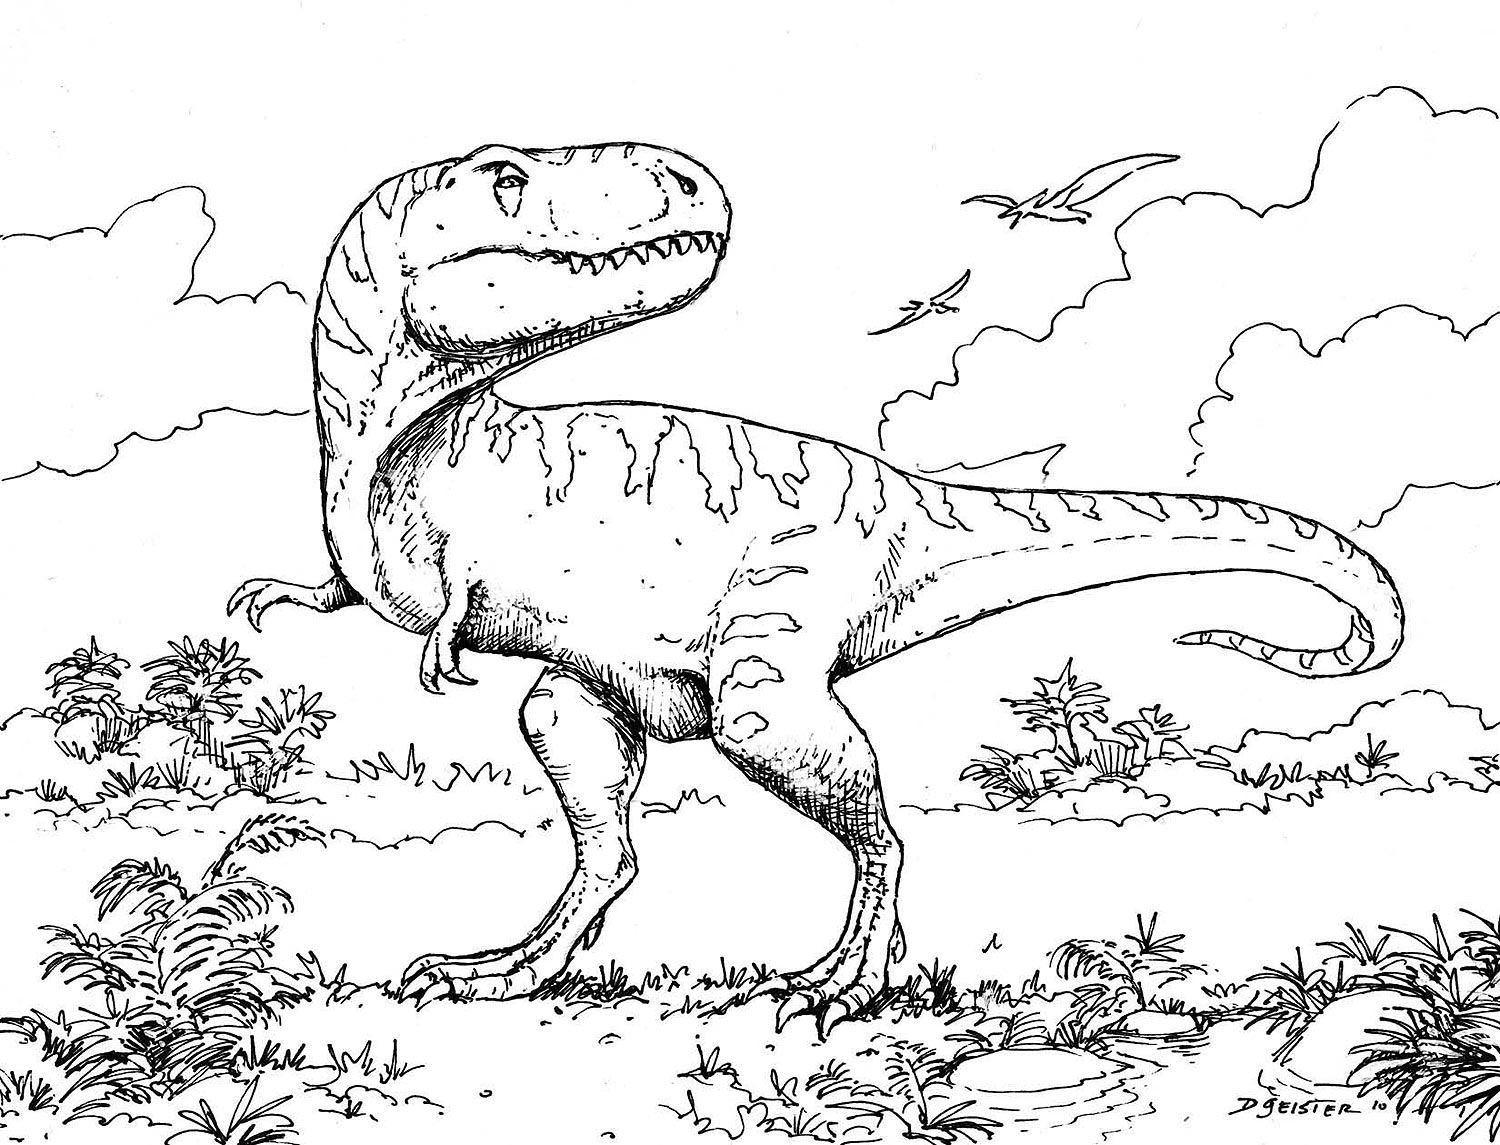 download dinosaur coloring pages 5 print - Dinosaurs Coloring Pages Print